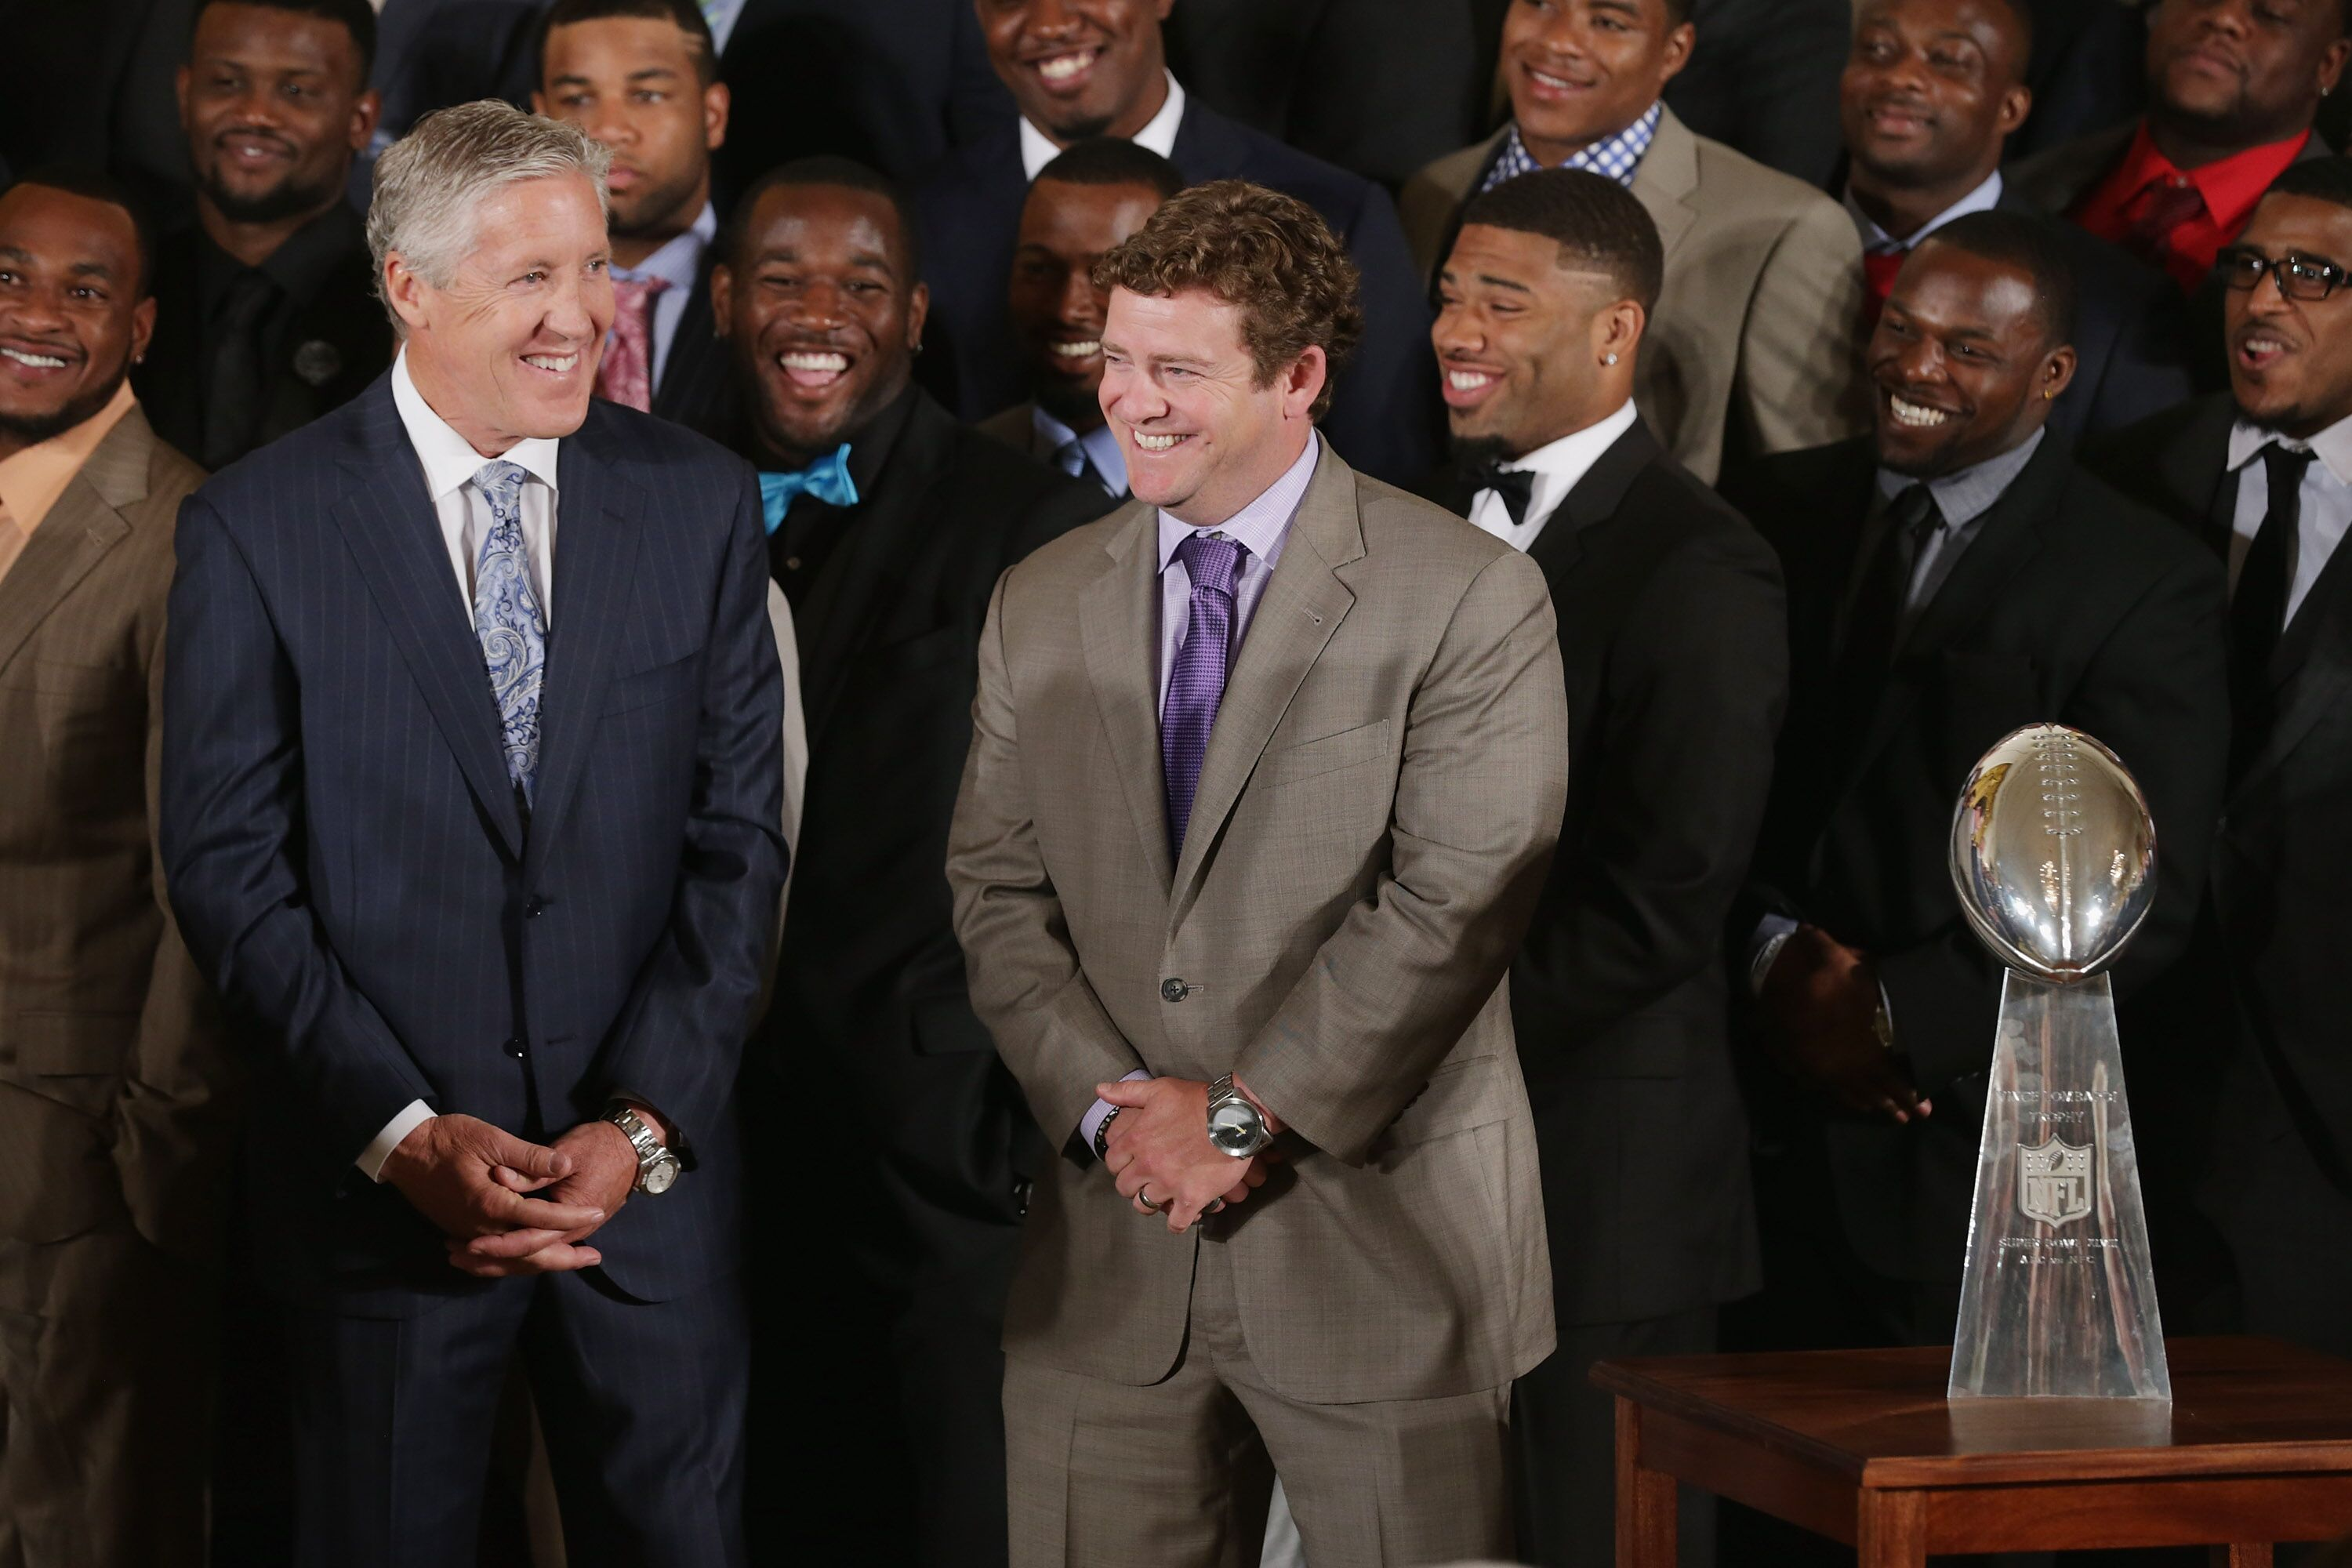 492646433-president-obama-hosts-super-bowl-champions-seattle-seahawks-at-the-white-house.jpg